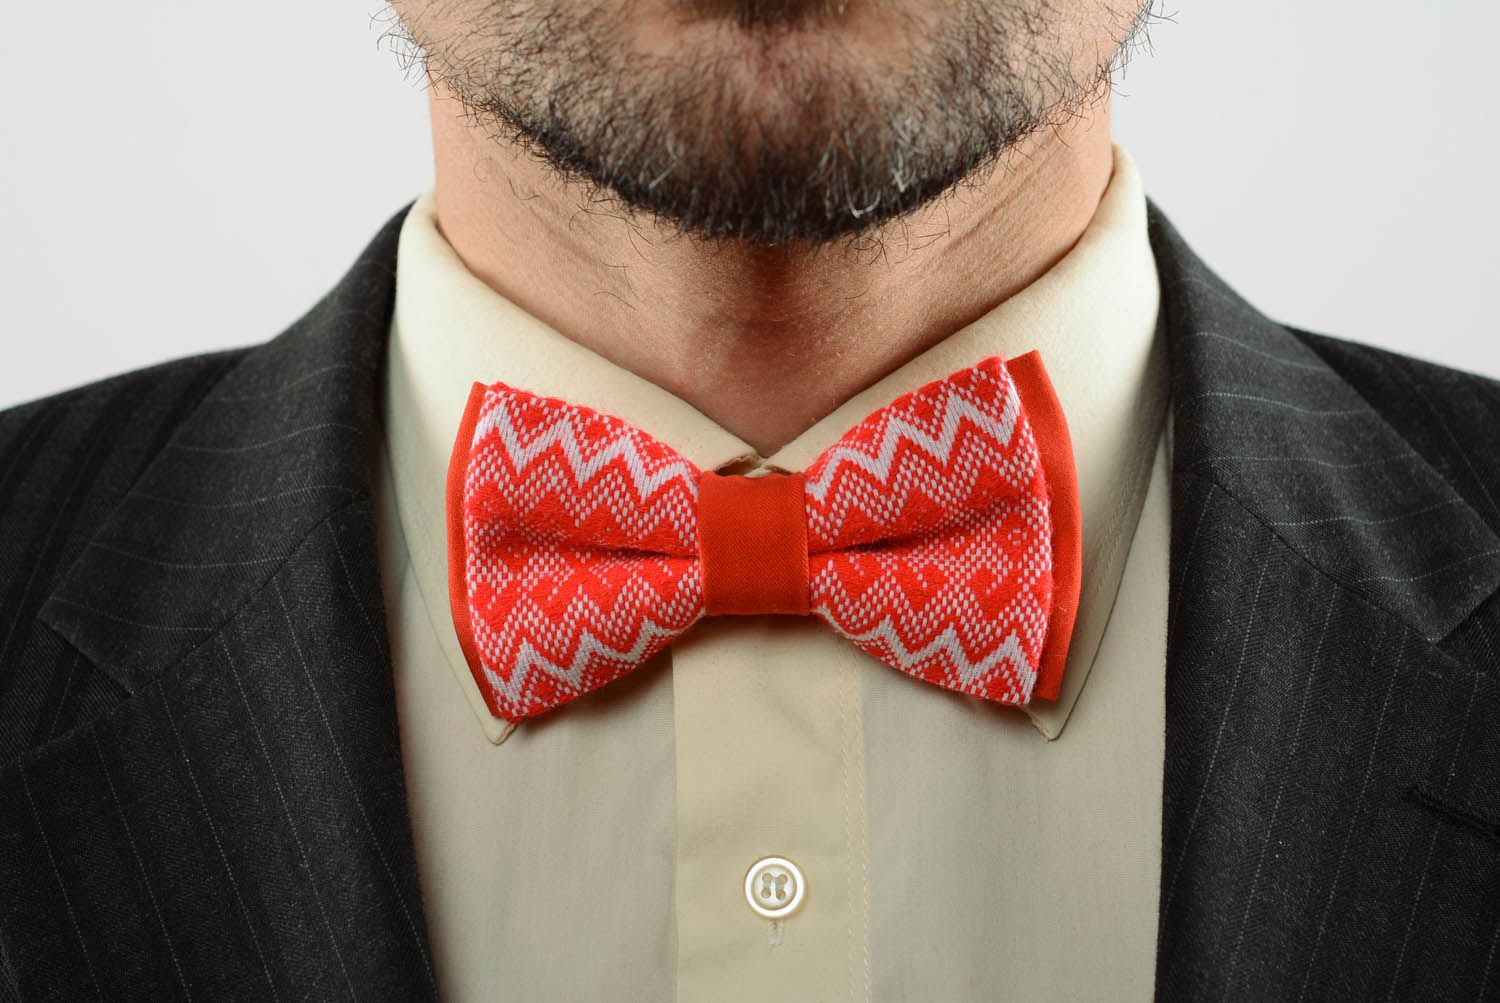 e6dfaf97b5a Bow tie handmade men s accessories original on Storenvy